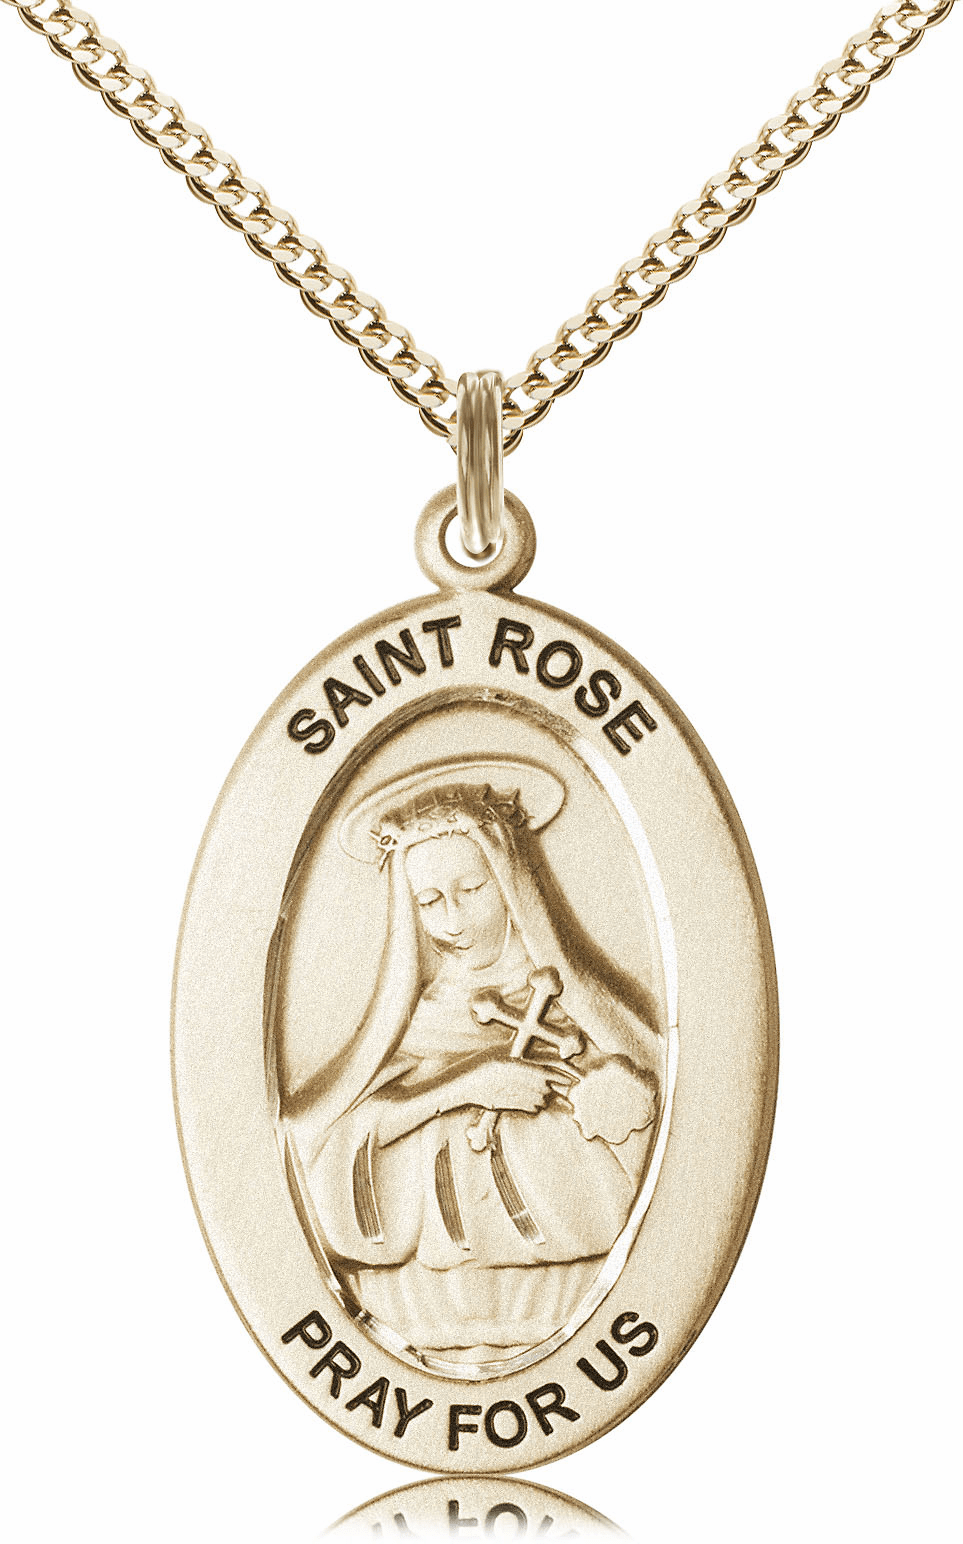 Bliss Mfg Saint Rose of Lima 14kt Gold-filled Medal Necklace w/Chain